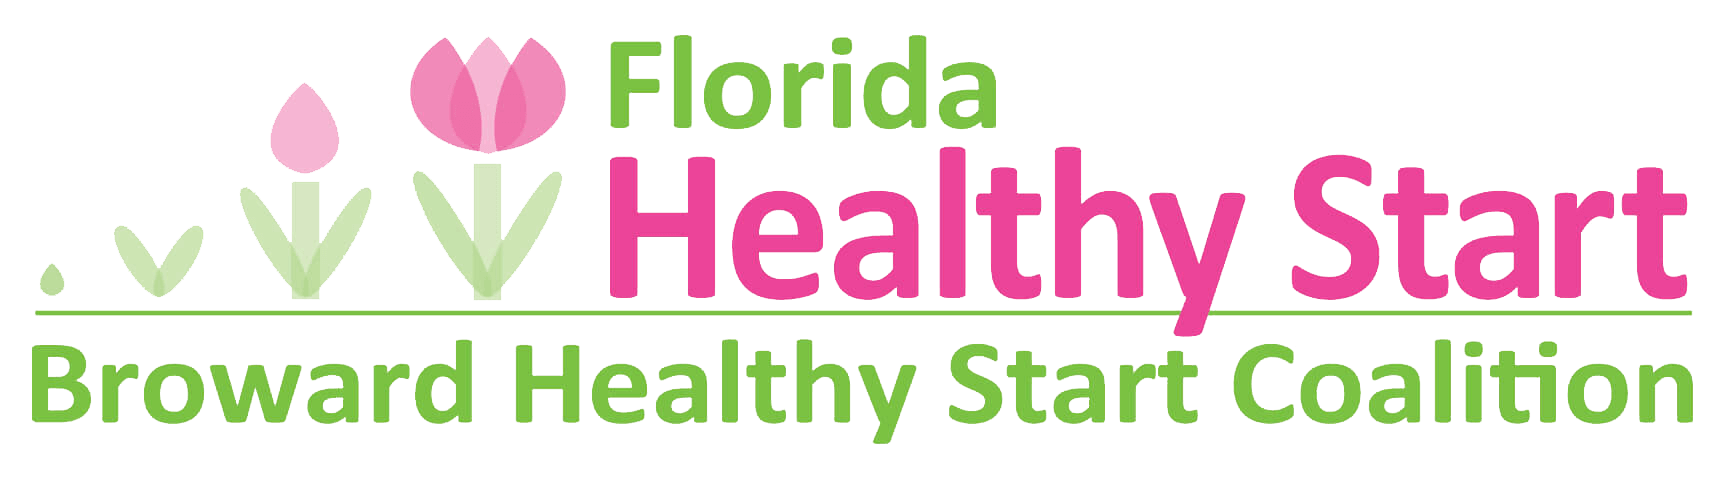 Broward Healthy Start Coalition